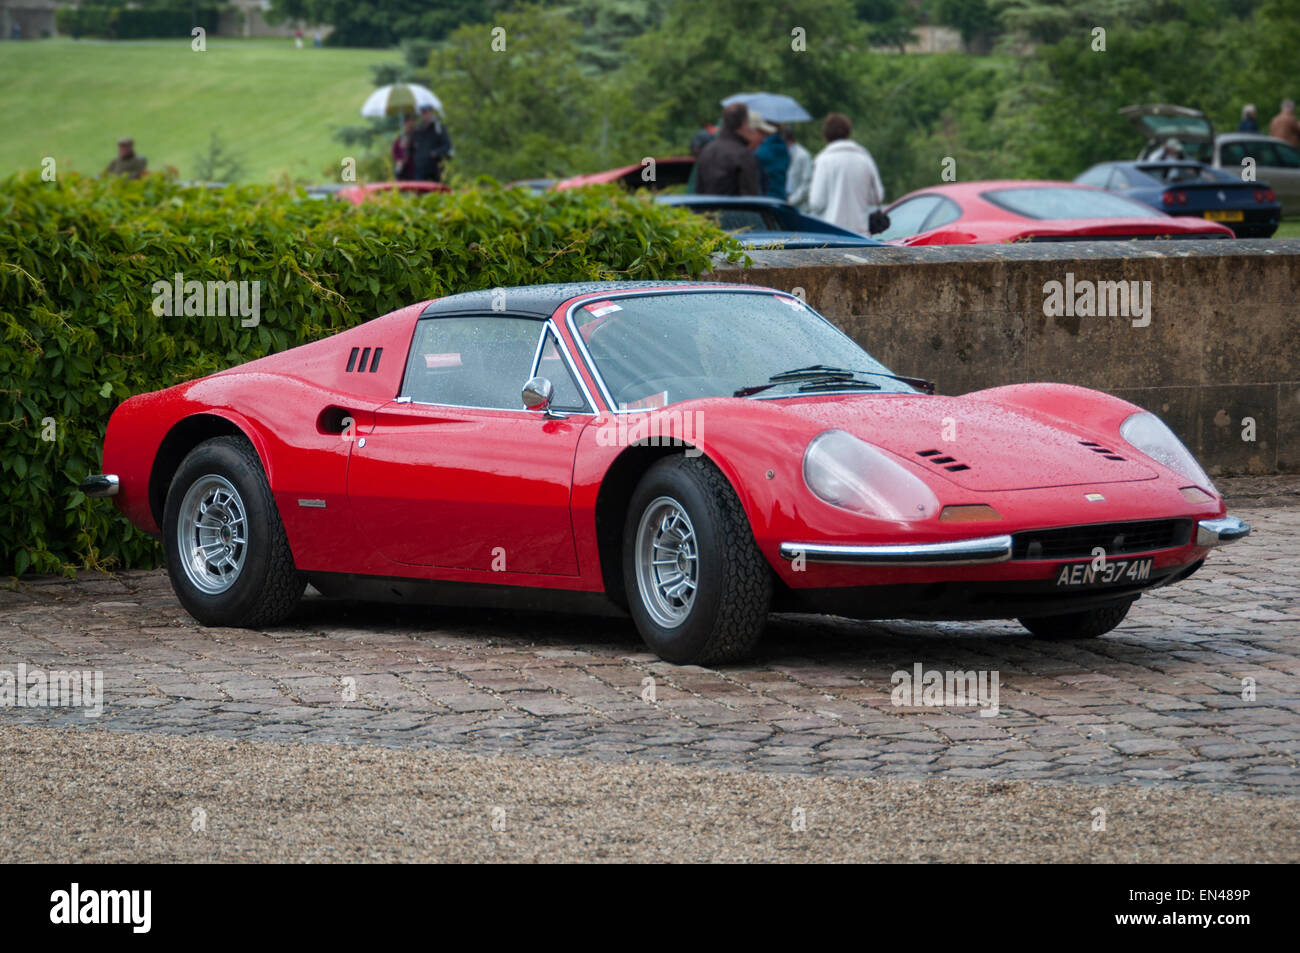 Ferrari Dino 206 GT at the Ferrari Owners Club Rally at Blenheim Palace, Woodstock, Oxfordshire - Stock Image